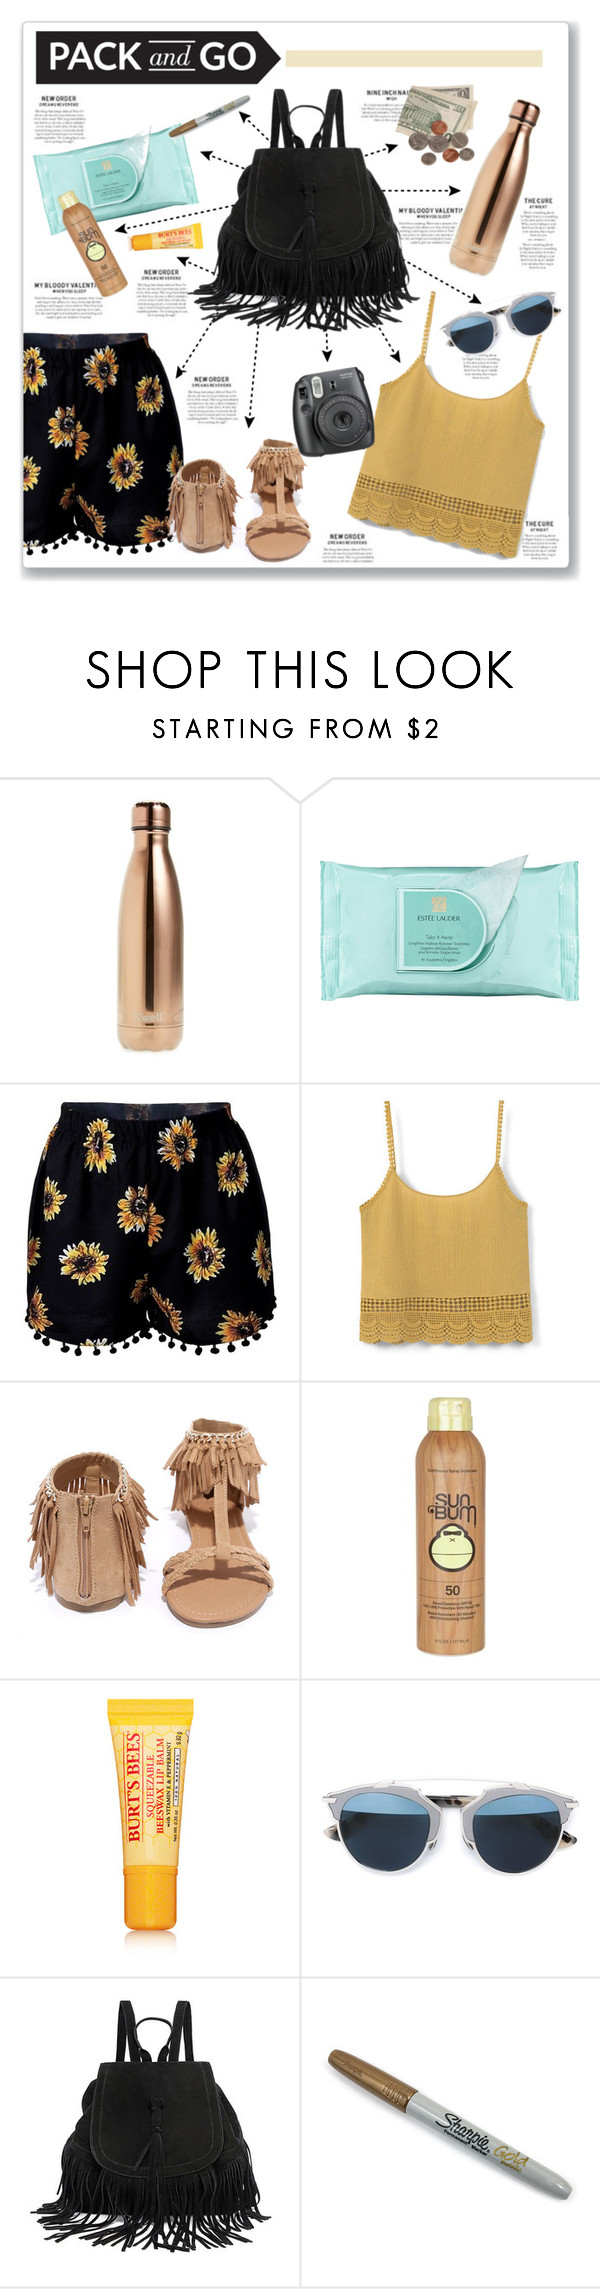 """Pack for Coachella!"" by kellylynne68 ❤ liked on Polyvore featuring S'well, Estée Lauder, MANGO, Qupid, Sun Bum, Burt's Bees, Christian Dior, Sharpie, coachella and Packandgo"